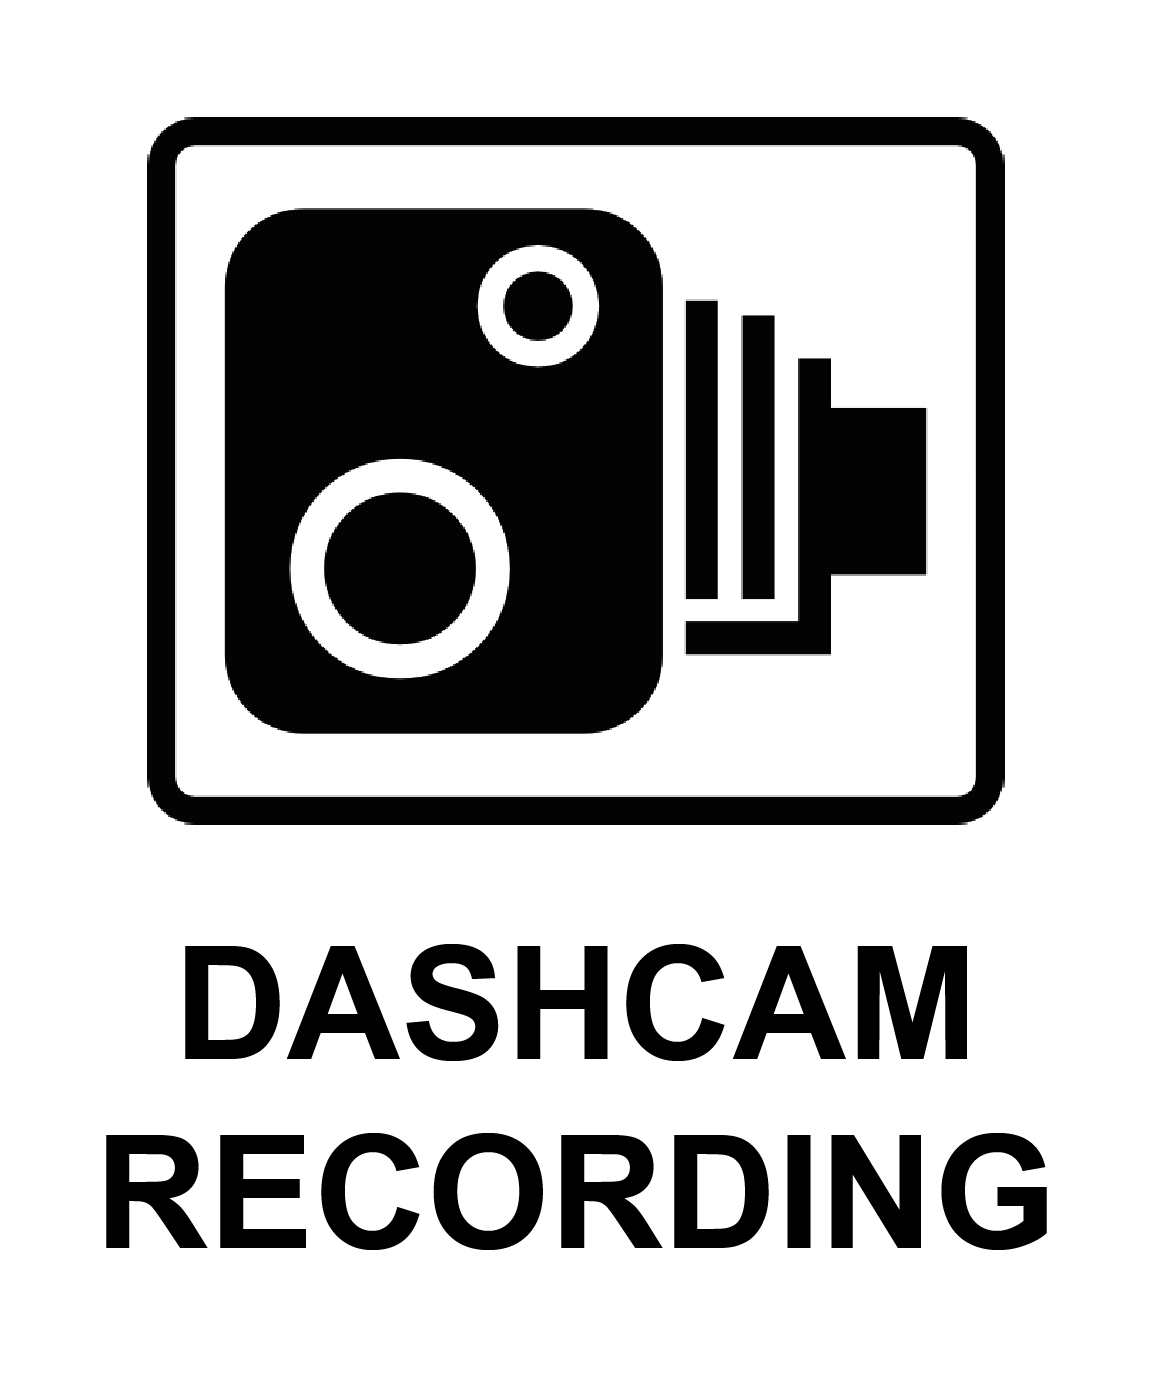 Dashcam recording portrait labels